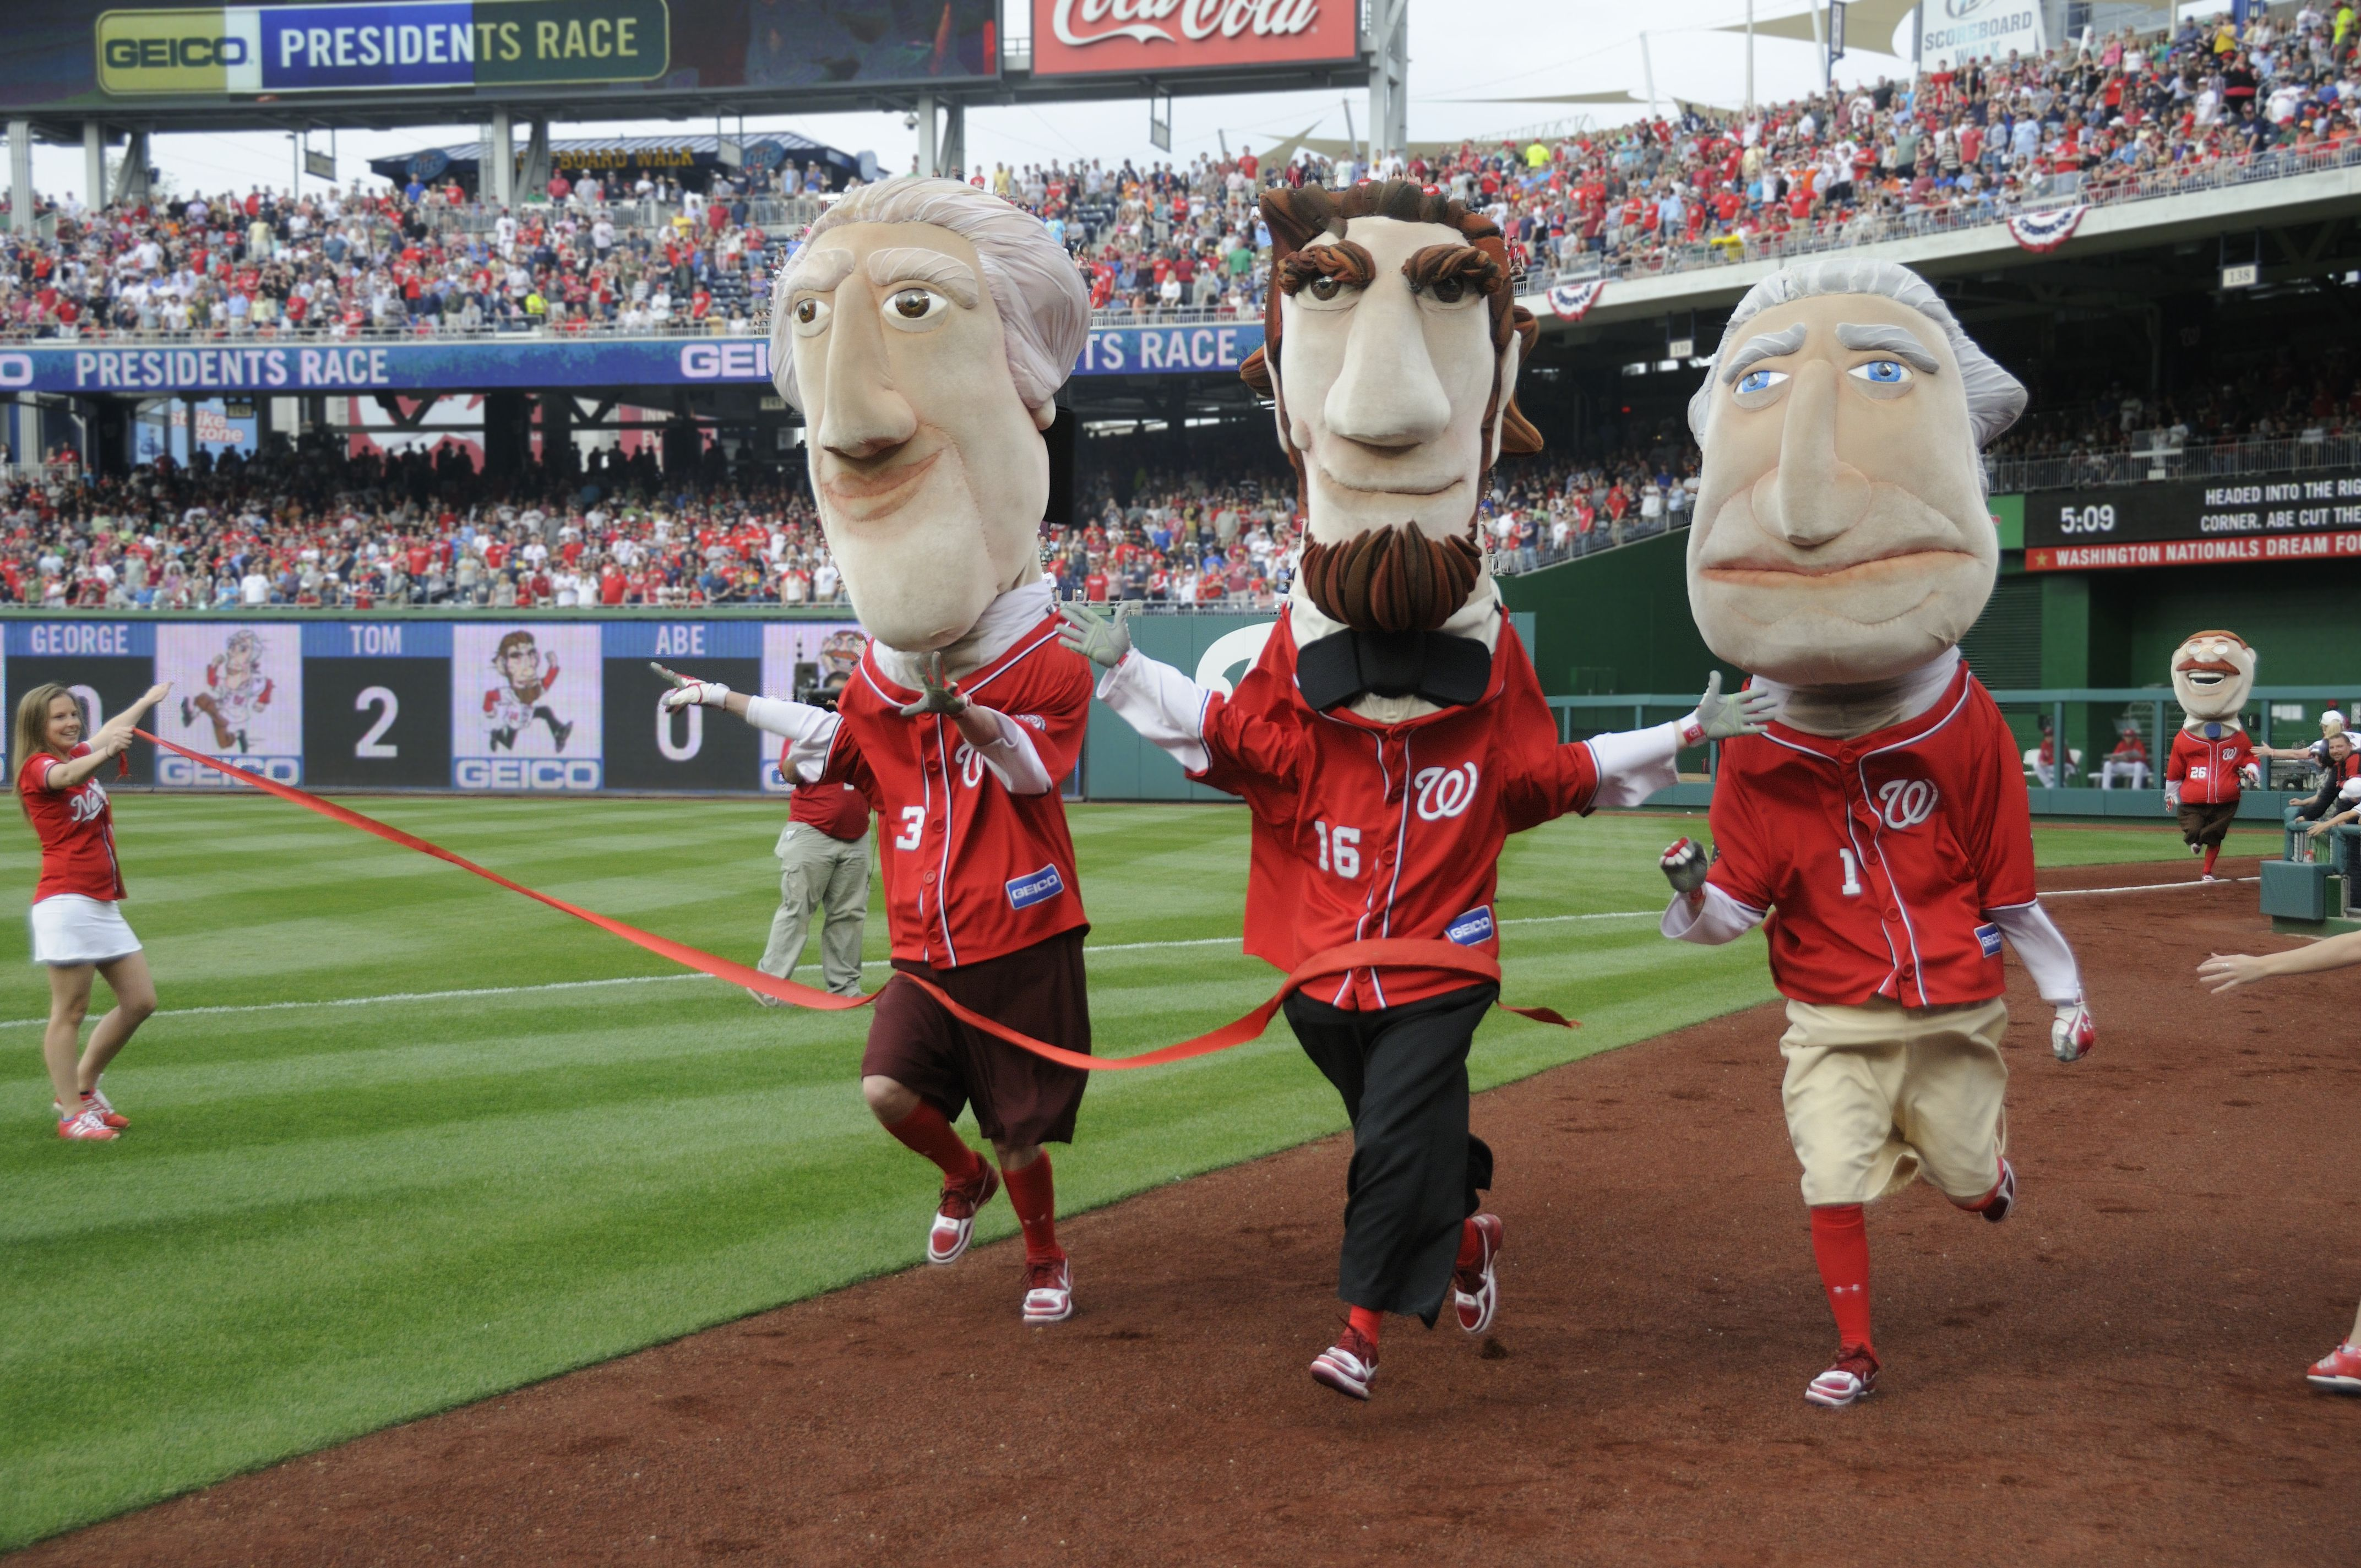 image relating to Washington Nationals Printable Schedule named Presidents race! Washington Nationals Baseball